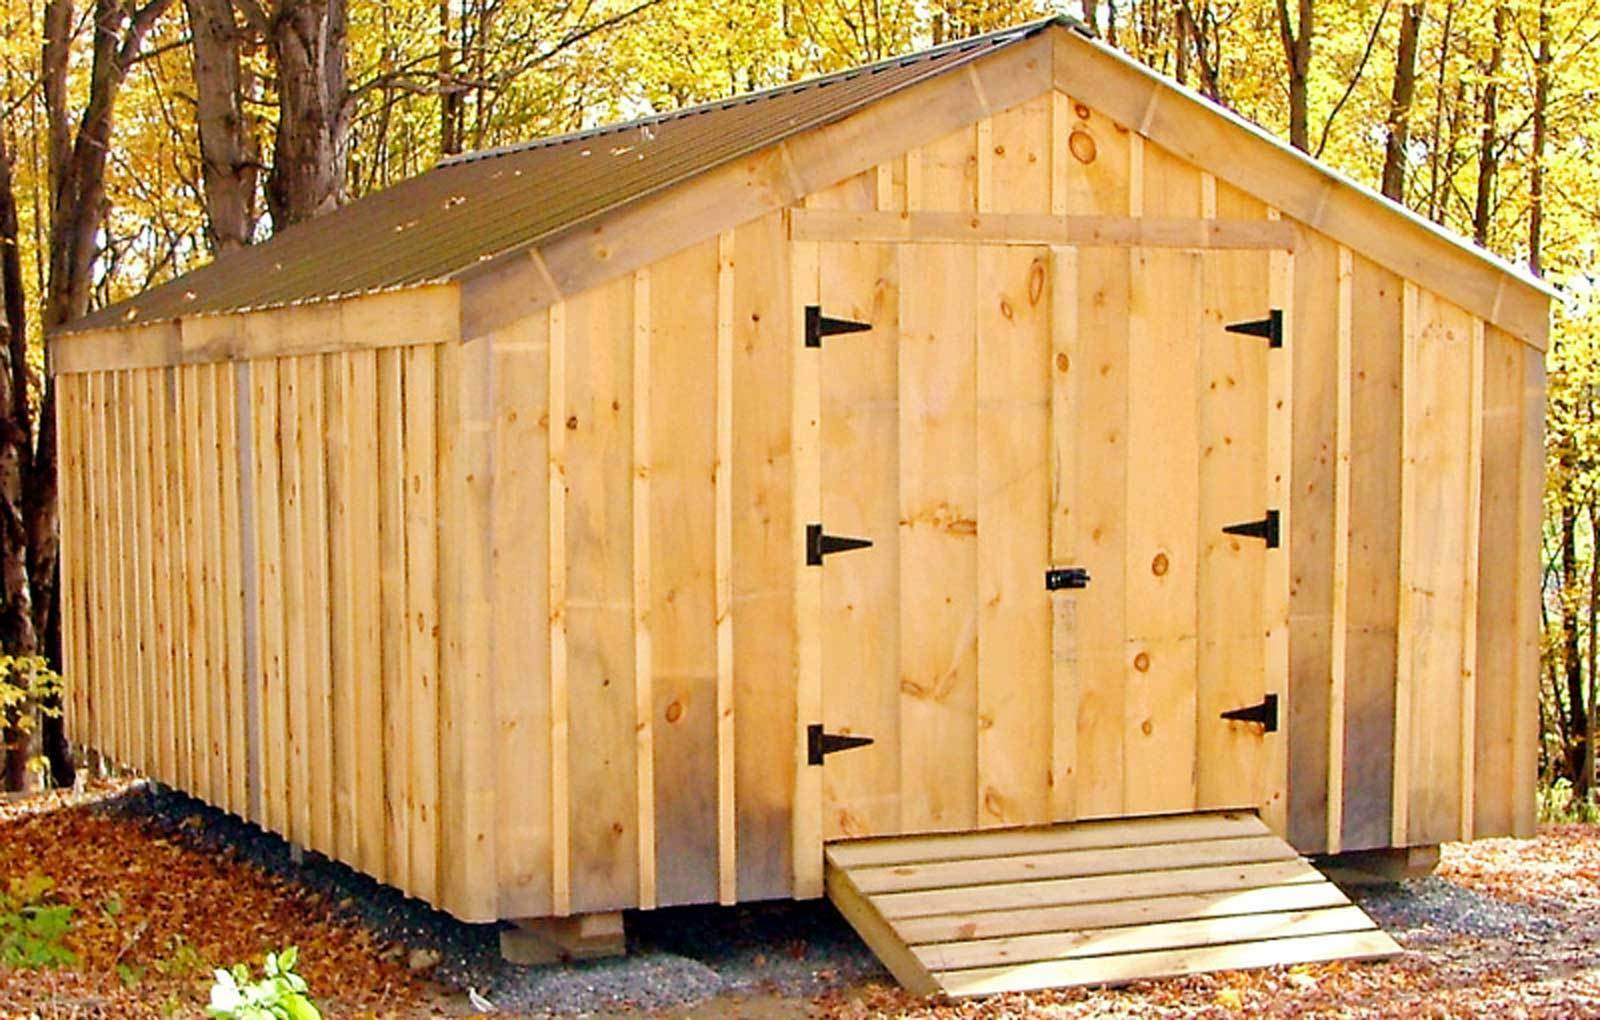 DIY PLANS, 14x20 Barn/Storage Shed, Potting/Garden/Animal/Garage ...